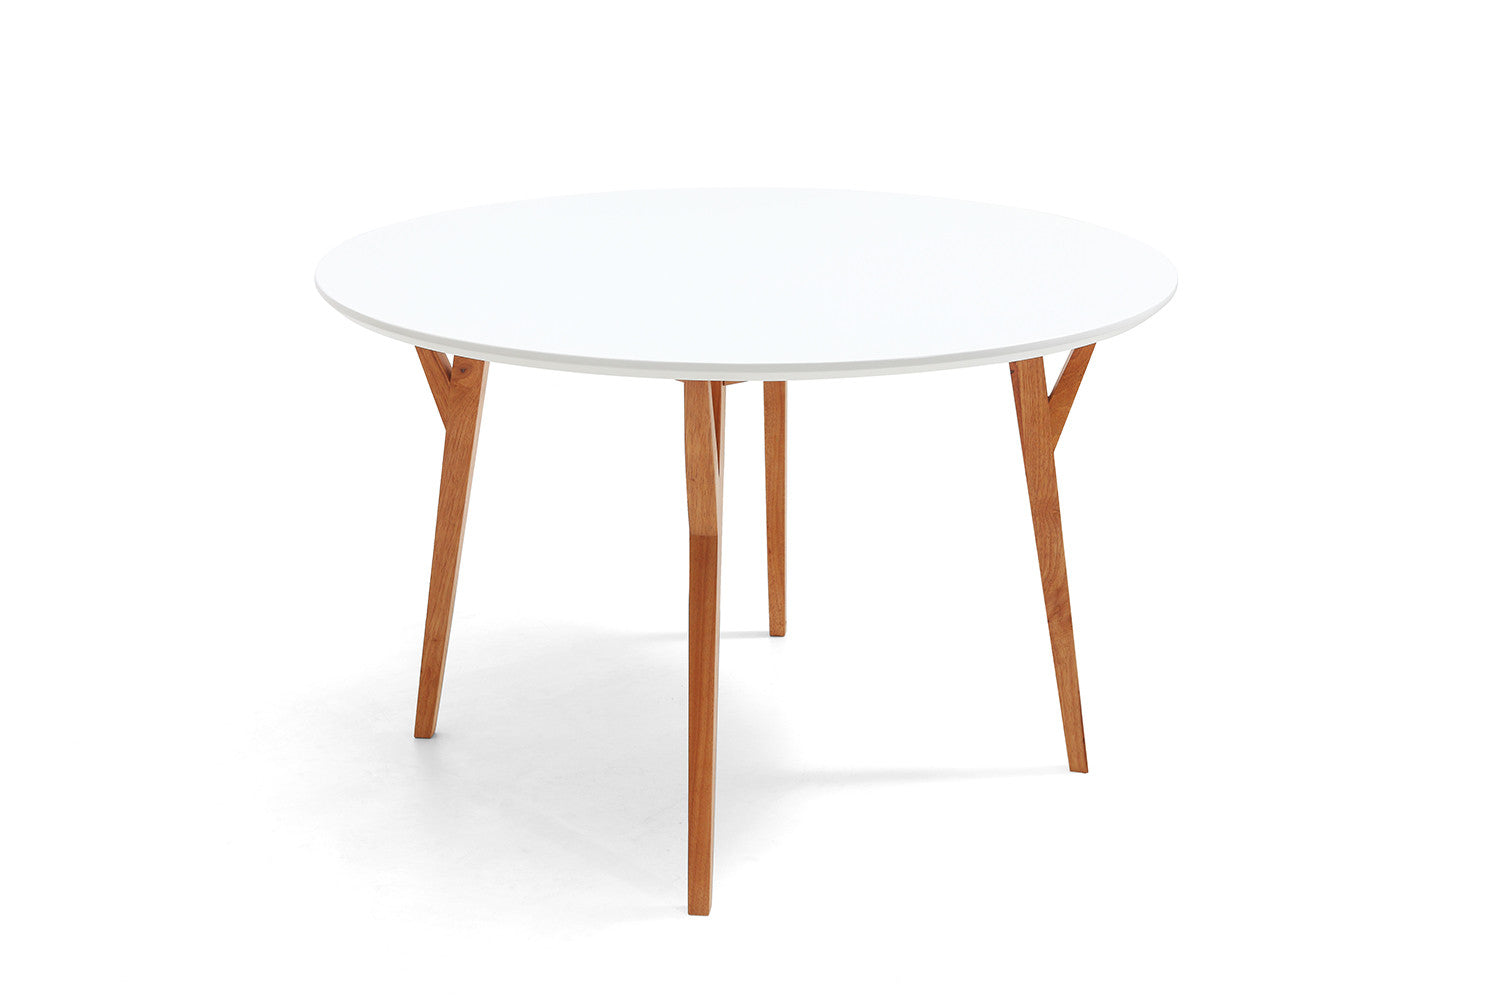 Table de salle manger ronde design scandinave moesa for Table salle a manger extensible blanche